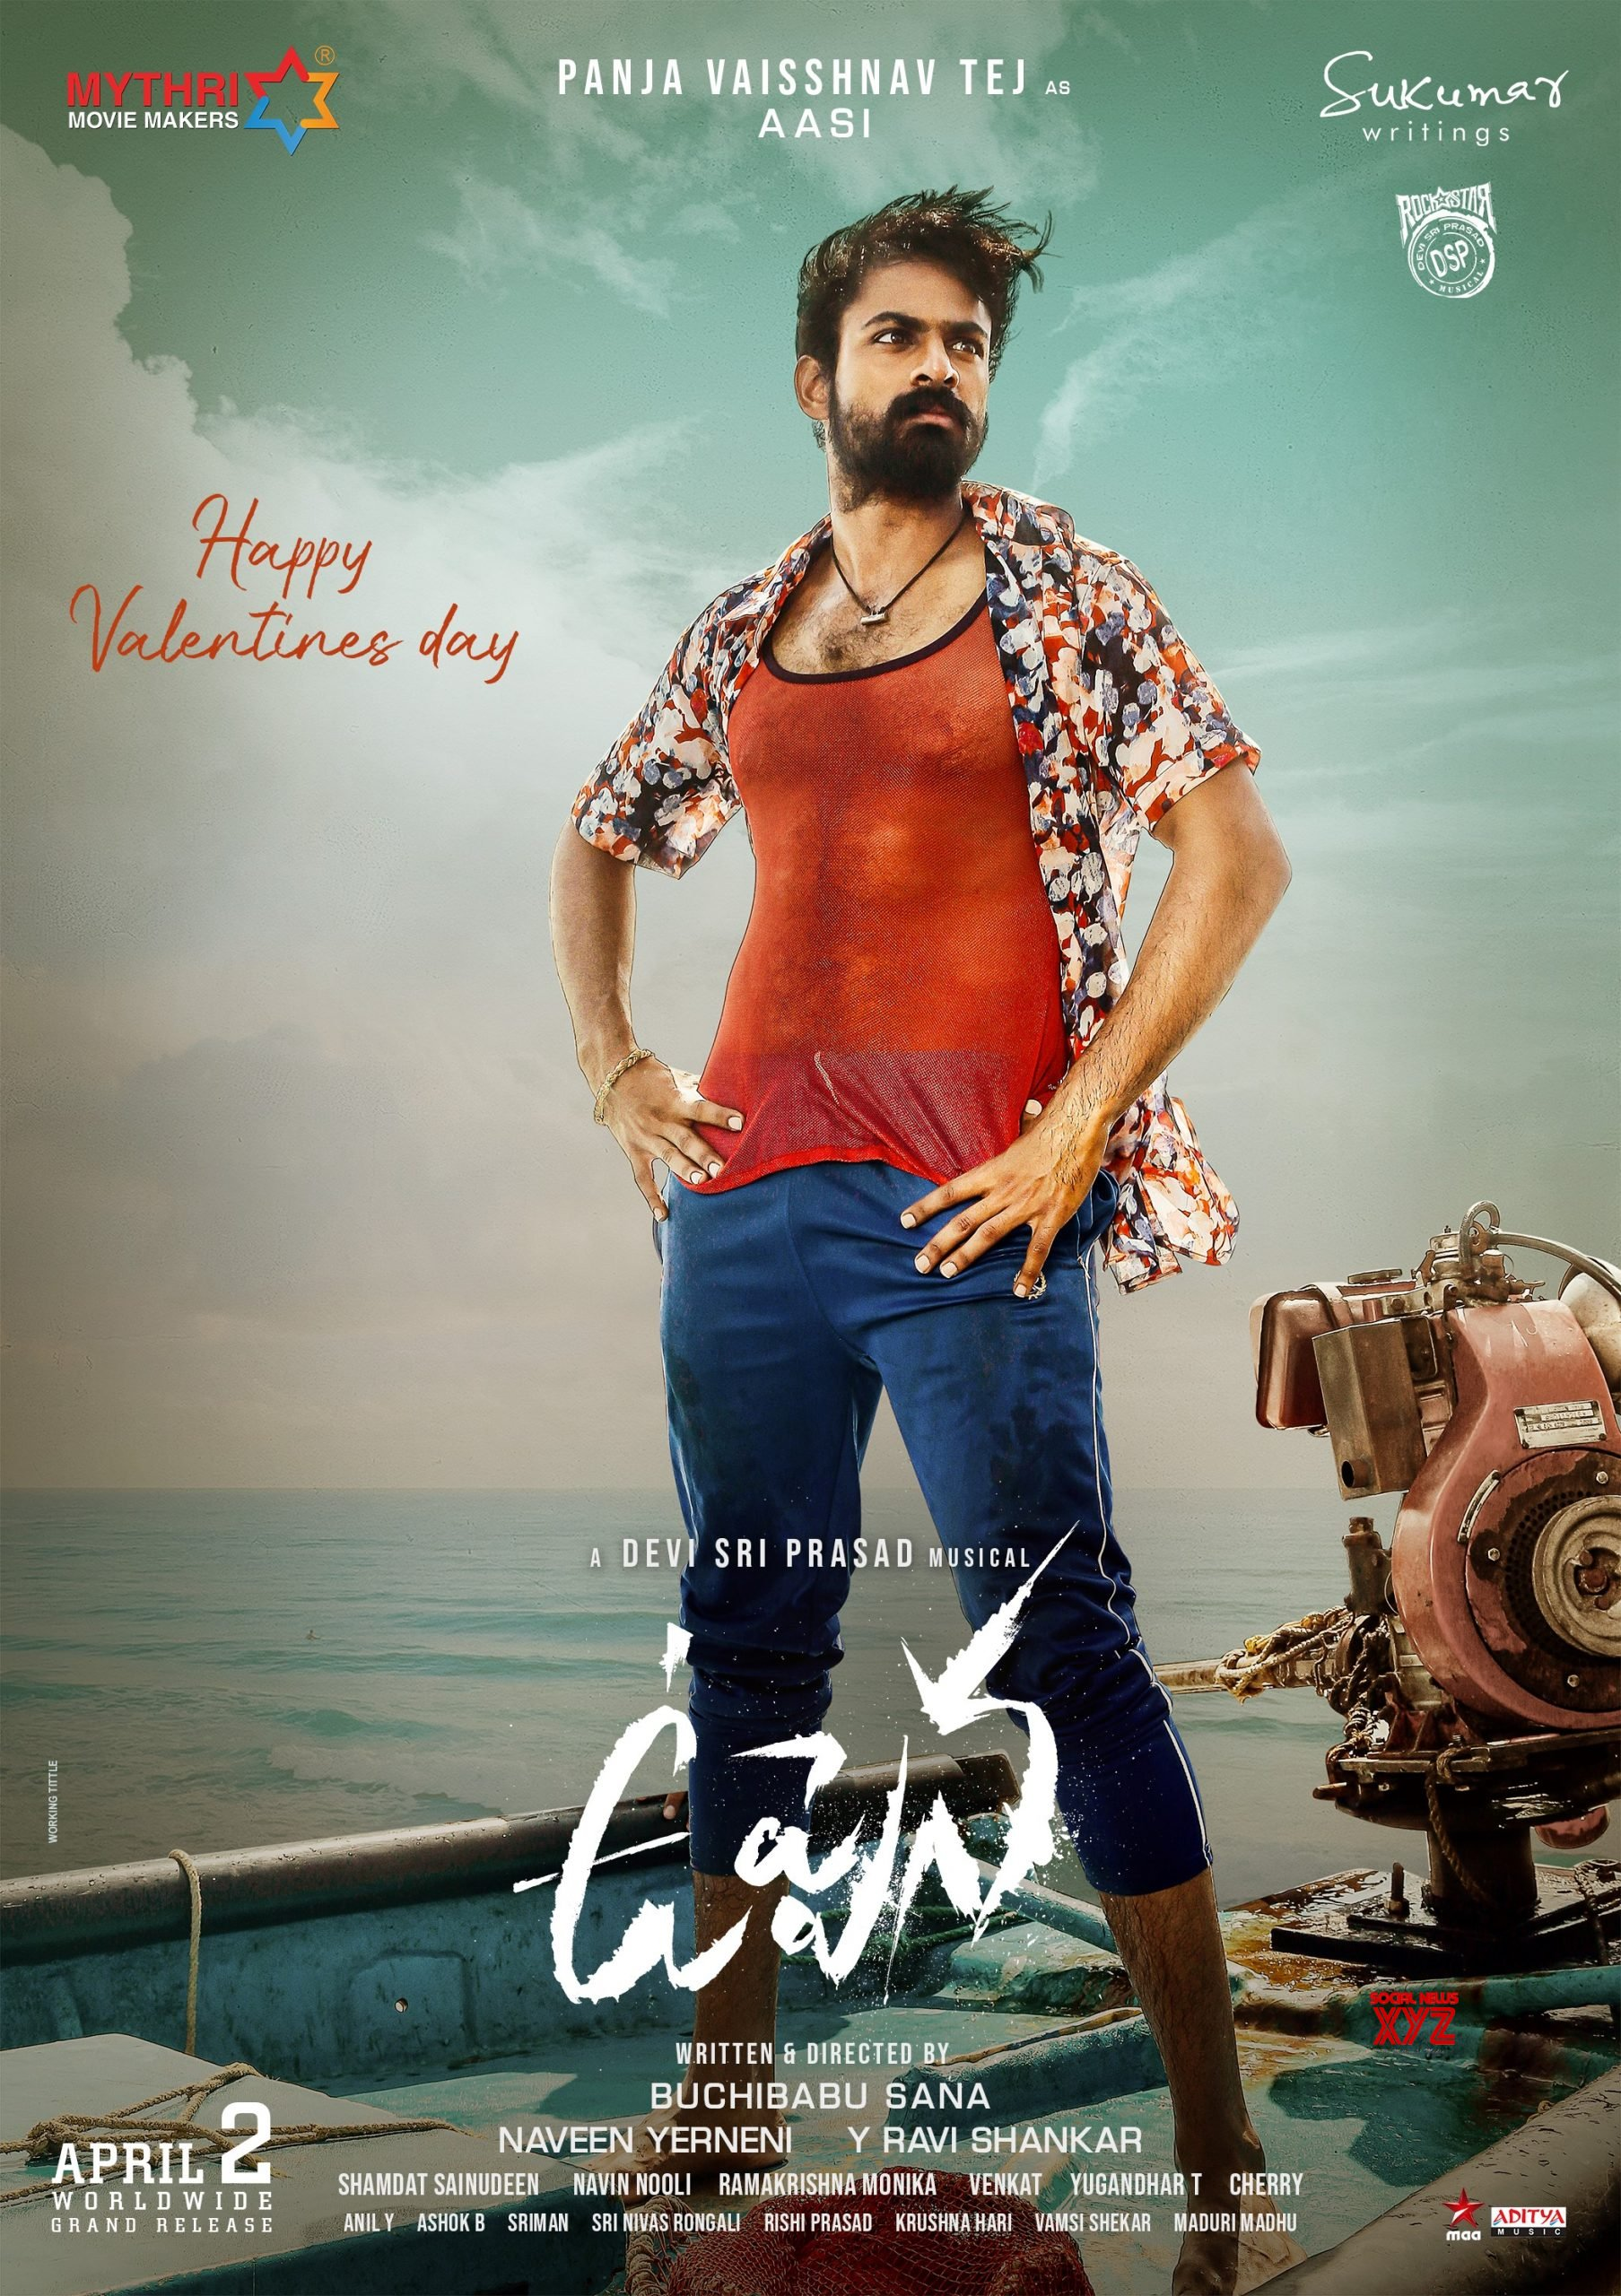 HD Posters And Stills: Vaisshnav Tej And Krithi Shetty's First Look In Uppena Released